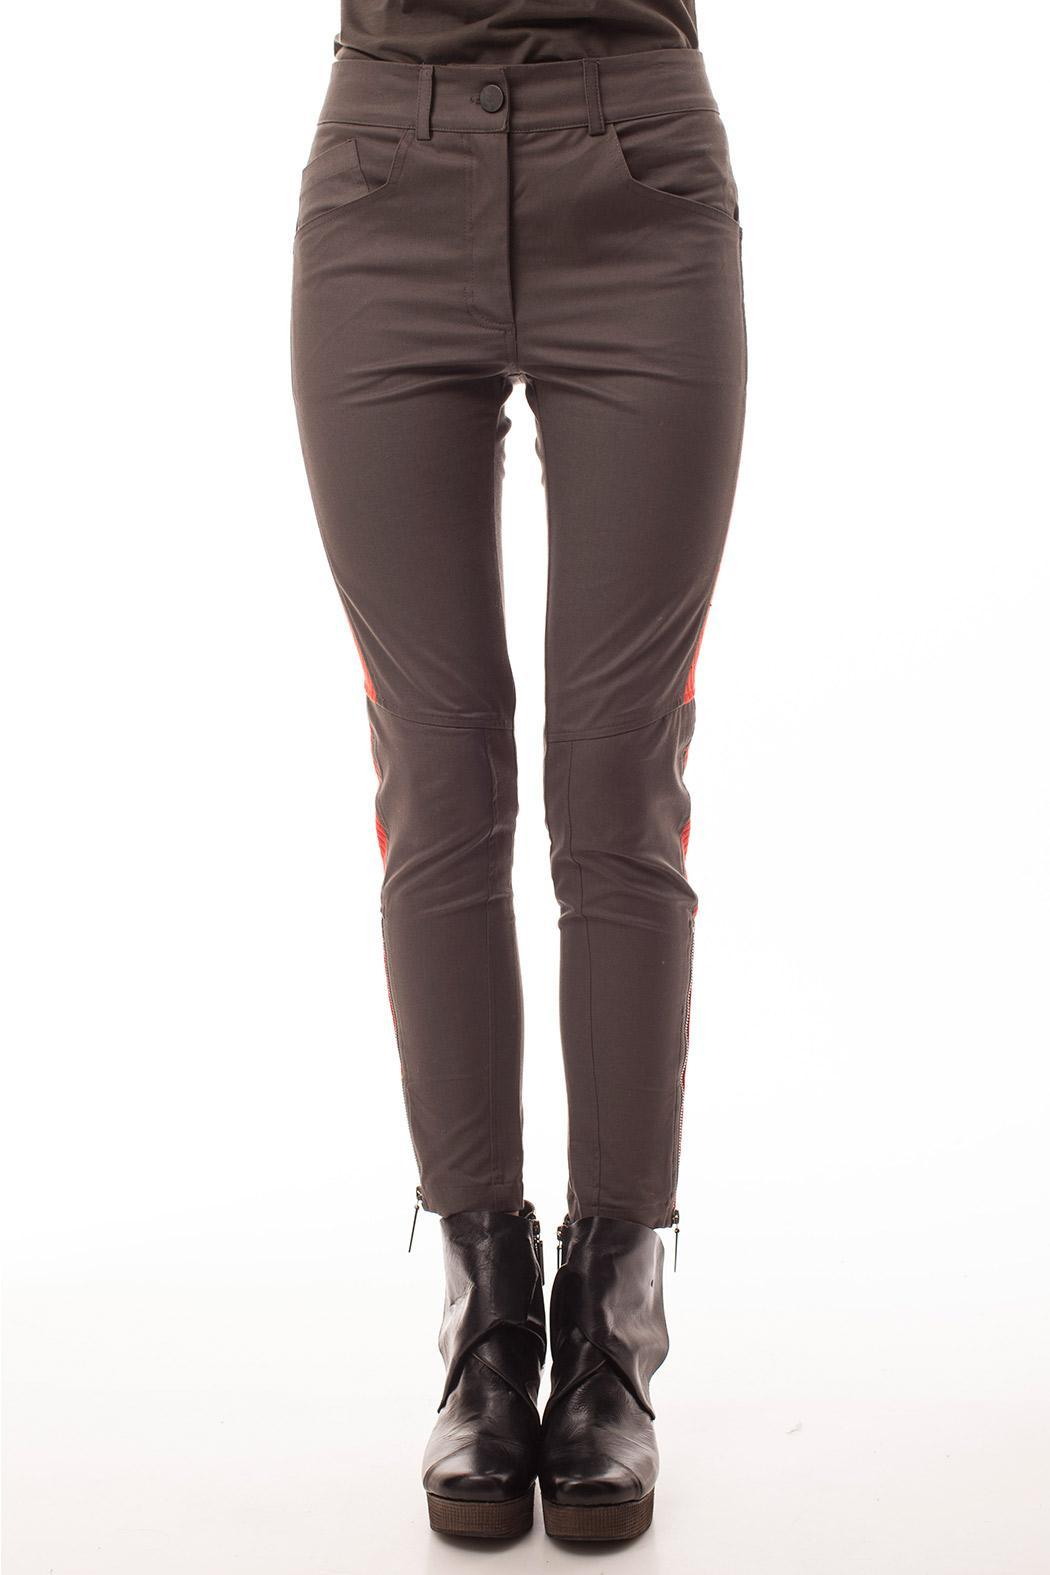 coragroppo Capri Brown Pants - Main Image